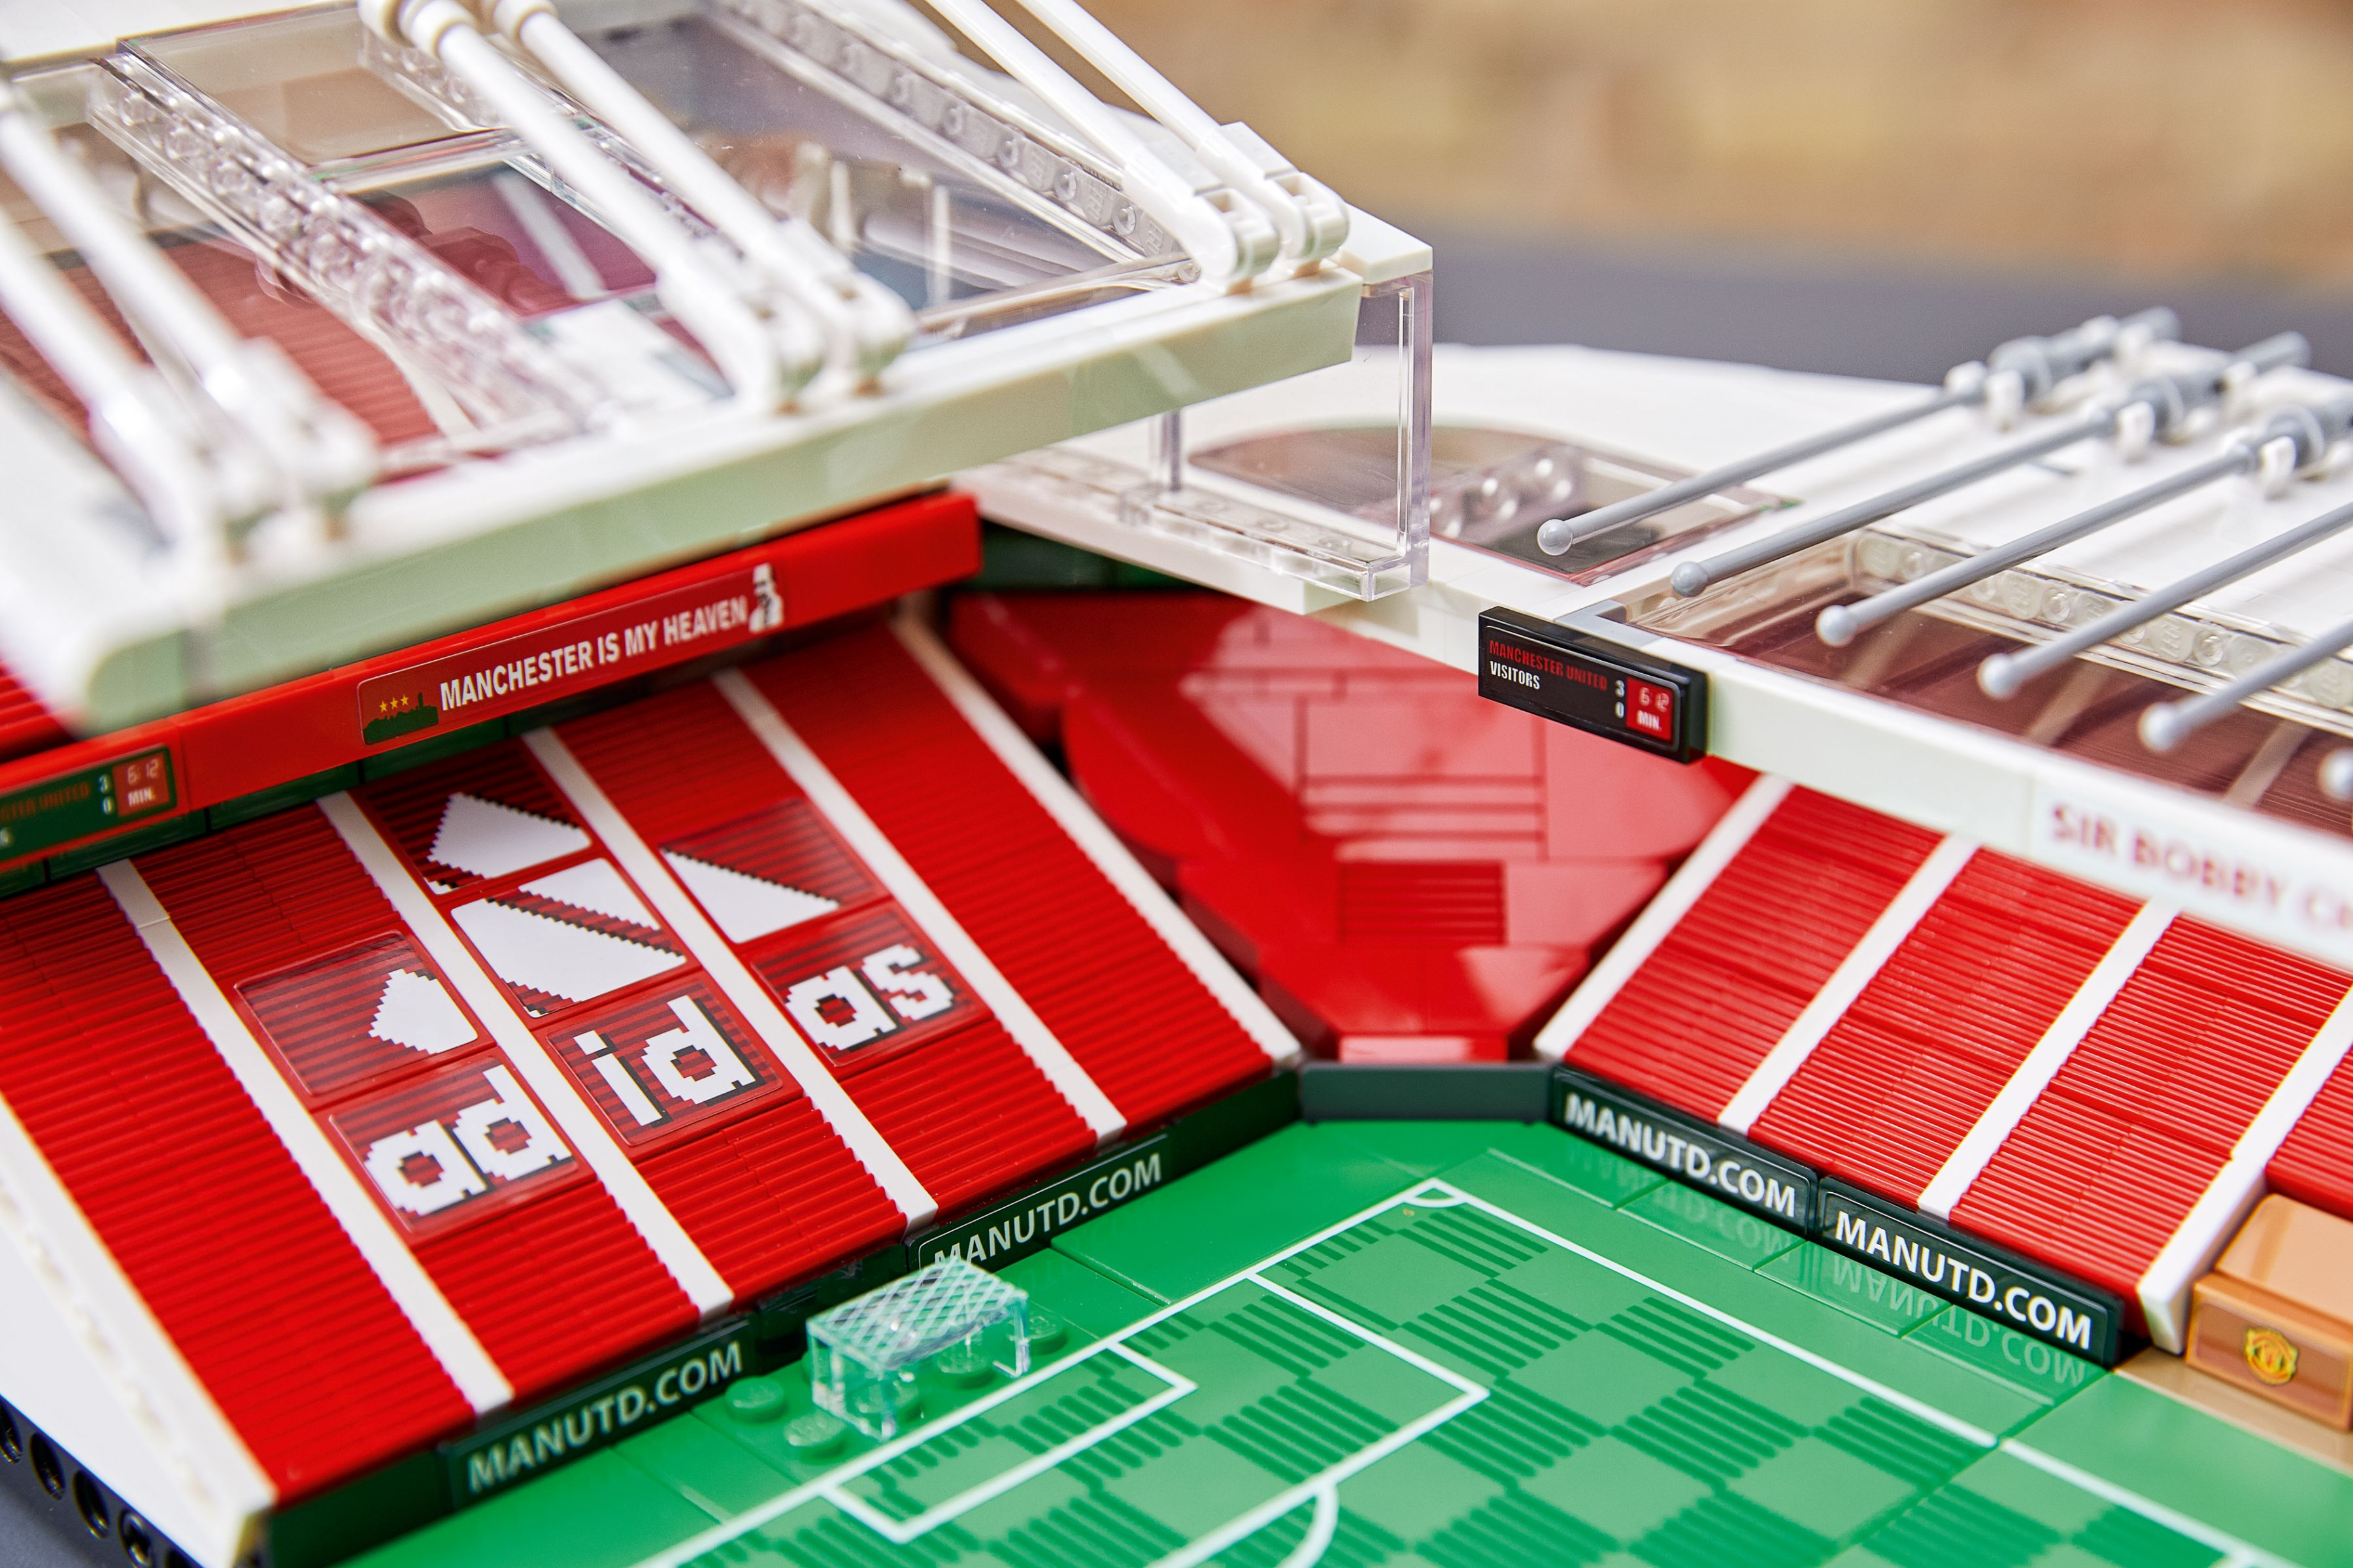 LEGO Advanced Models 10272 Old Trafford - Manchester United LEGO_10272_alt2.jpg